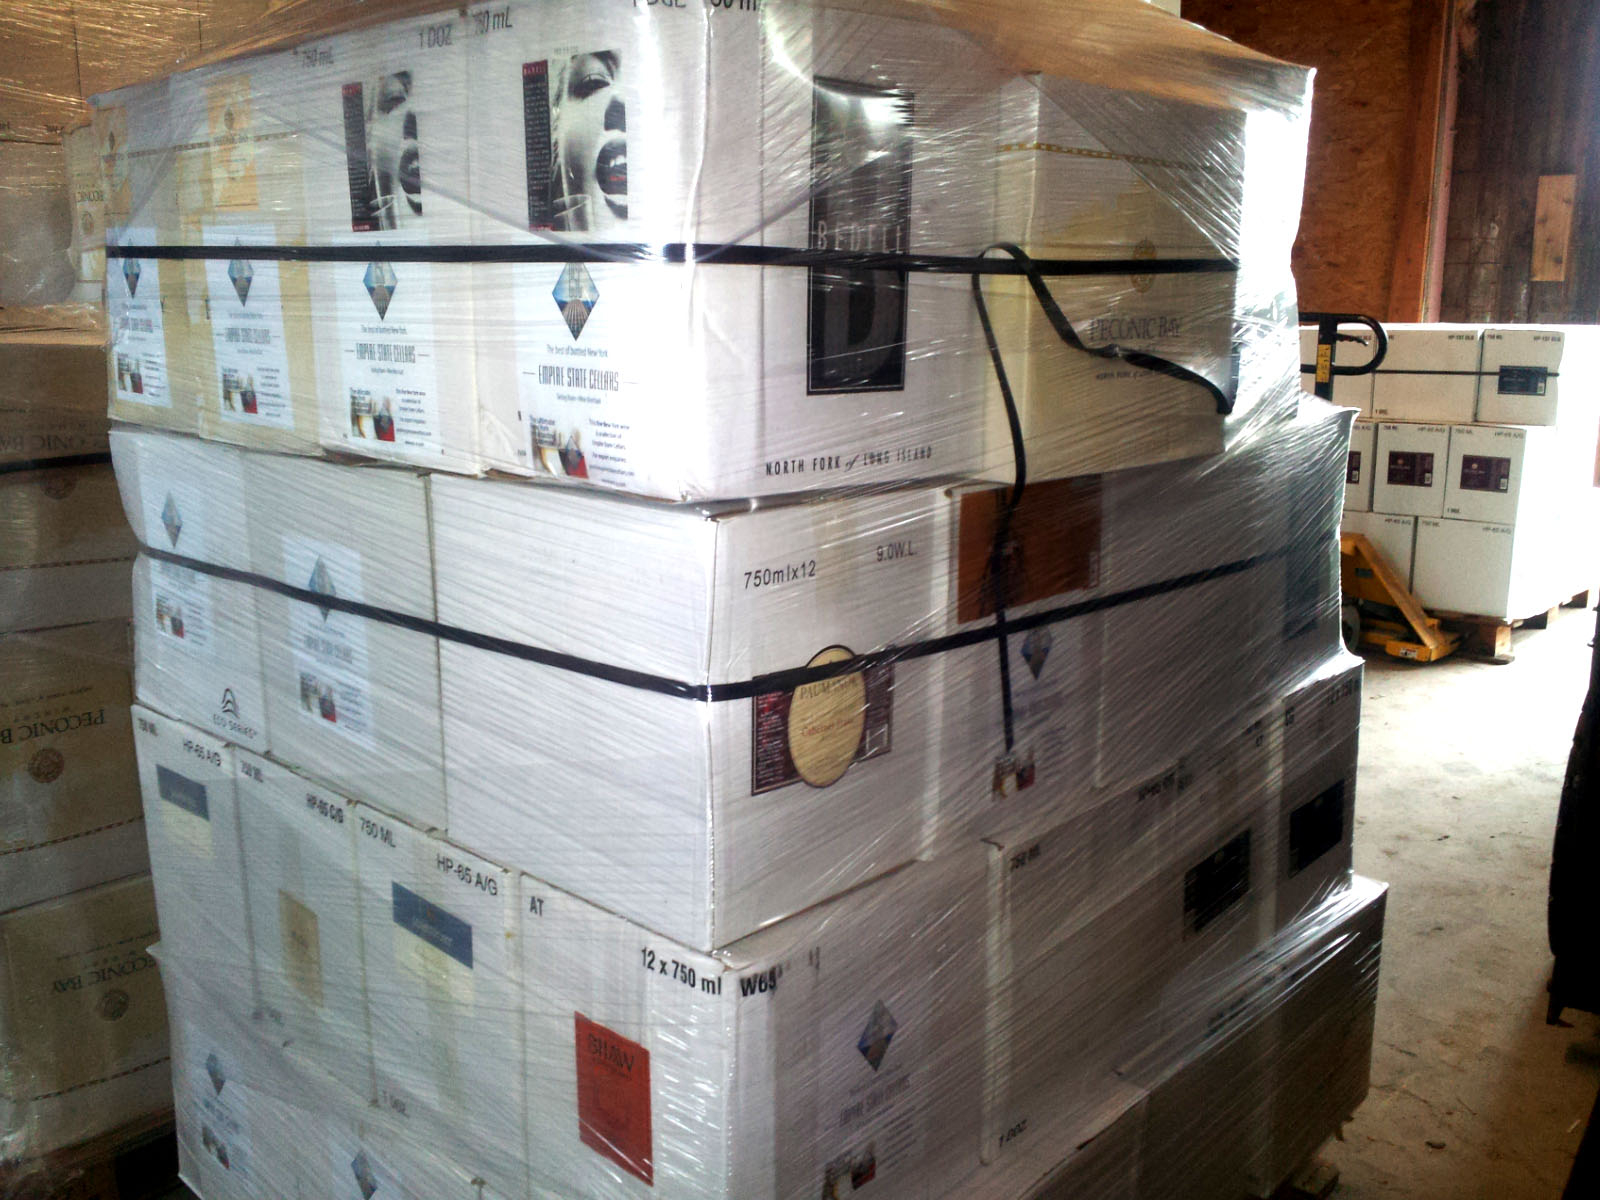 The first pallet of New York wine being prepped for shipment to Shanghai, China